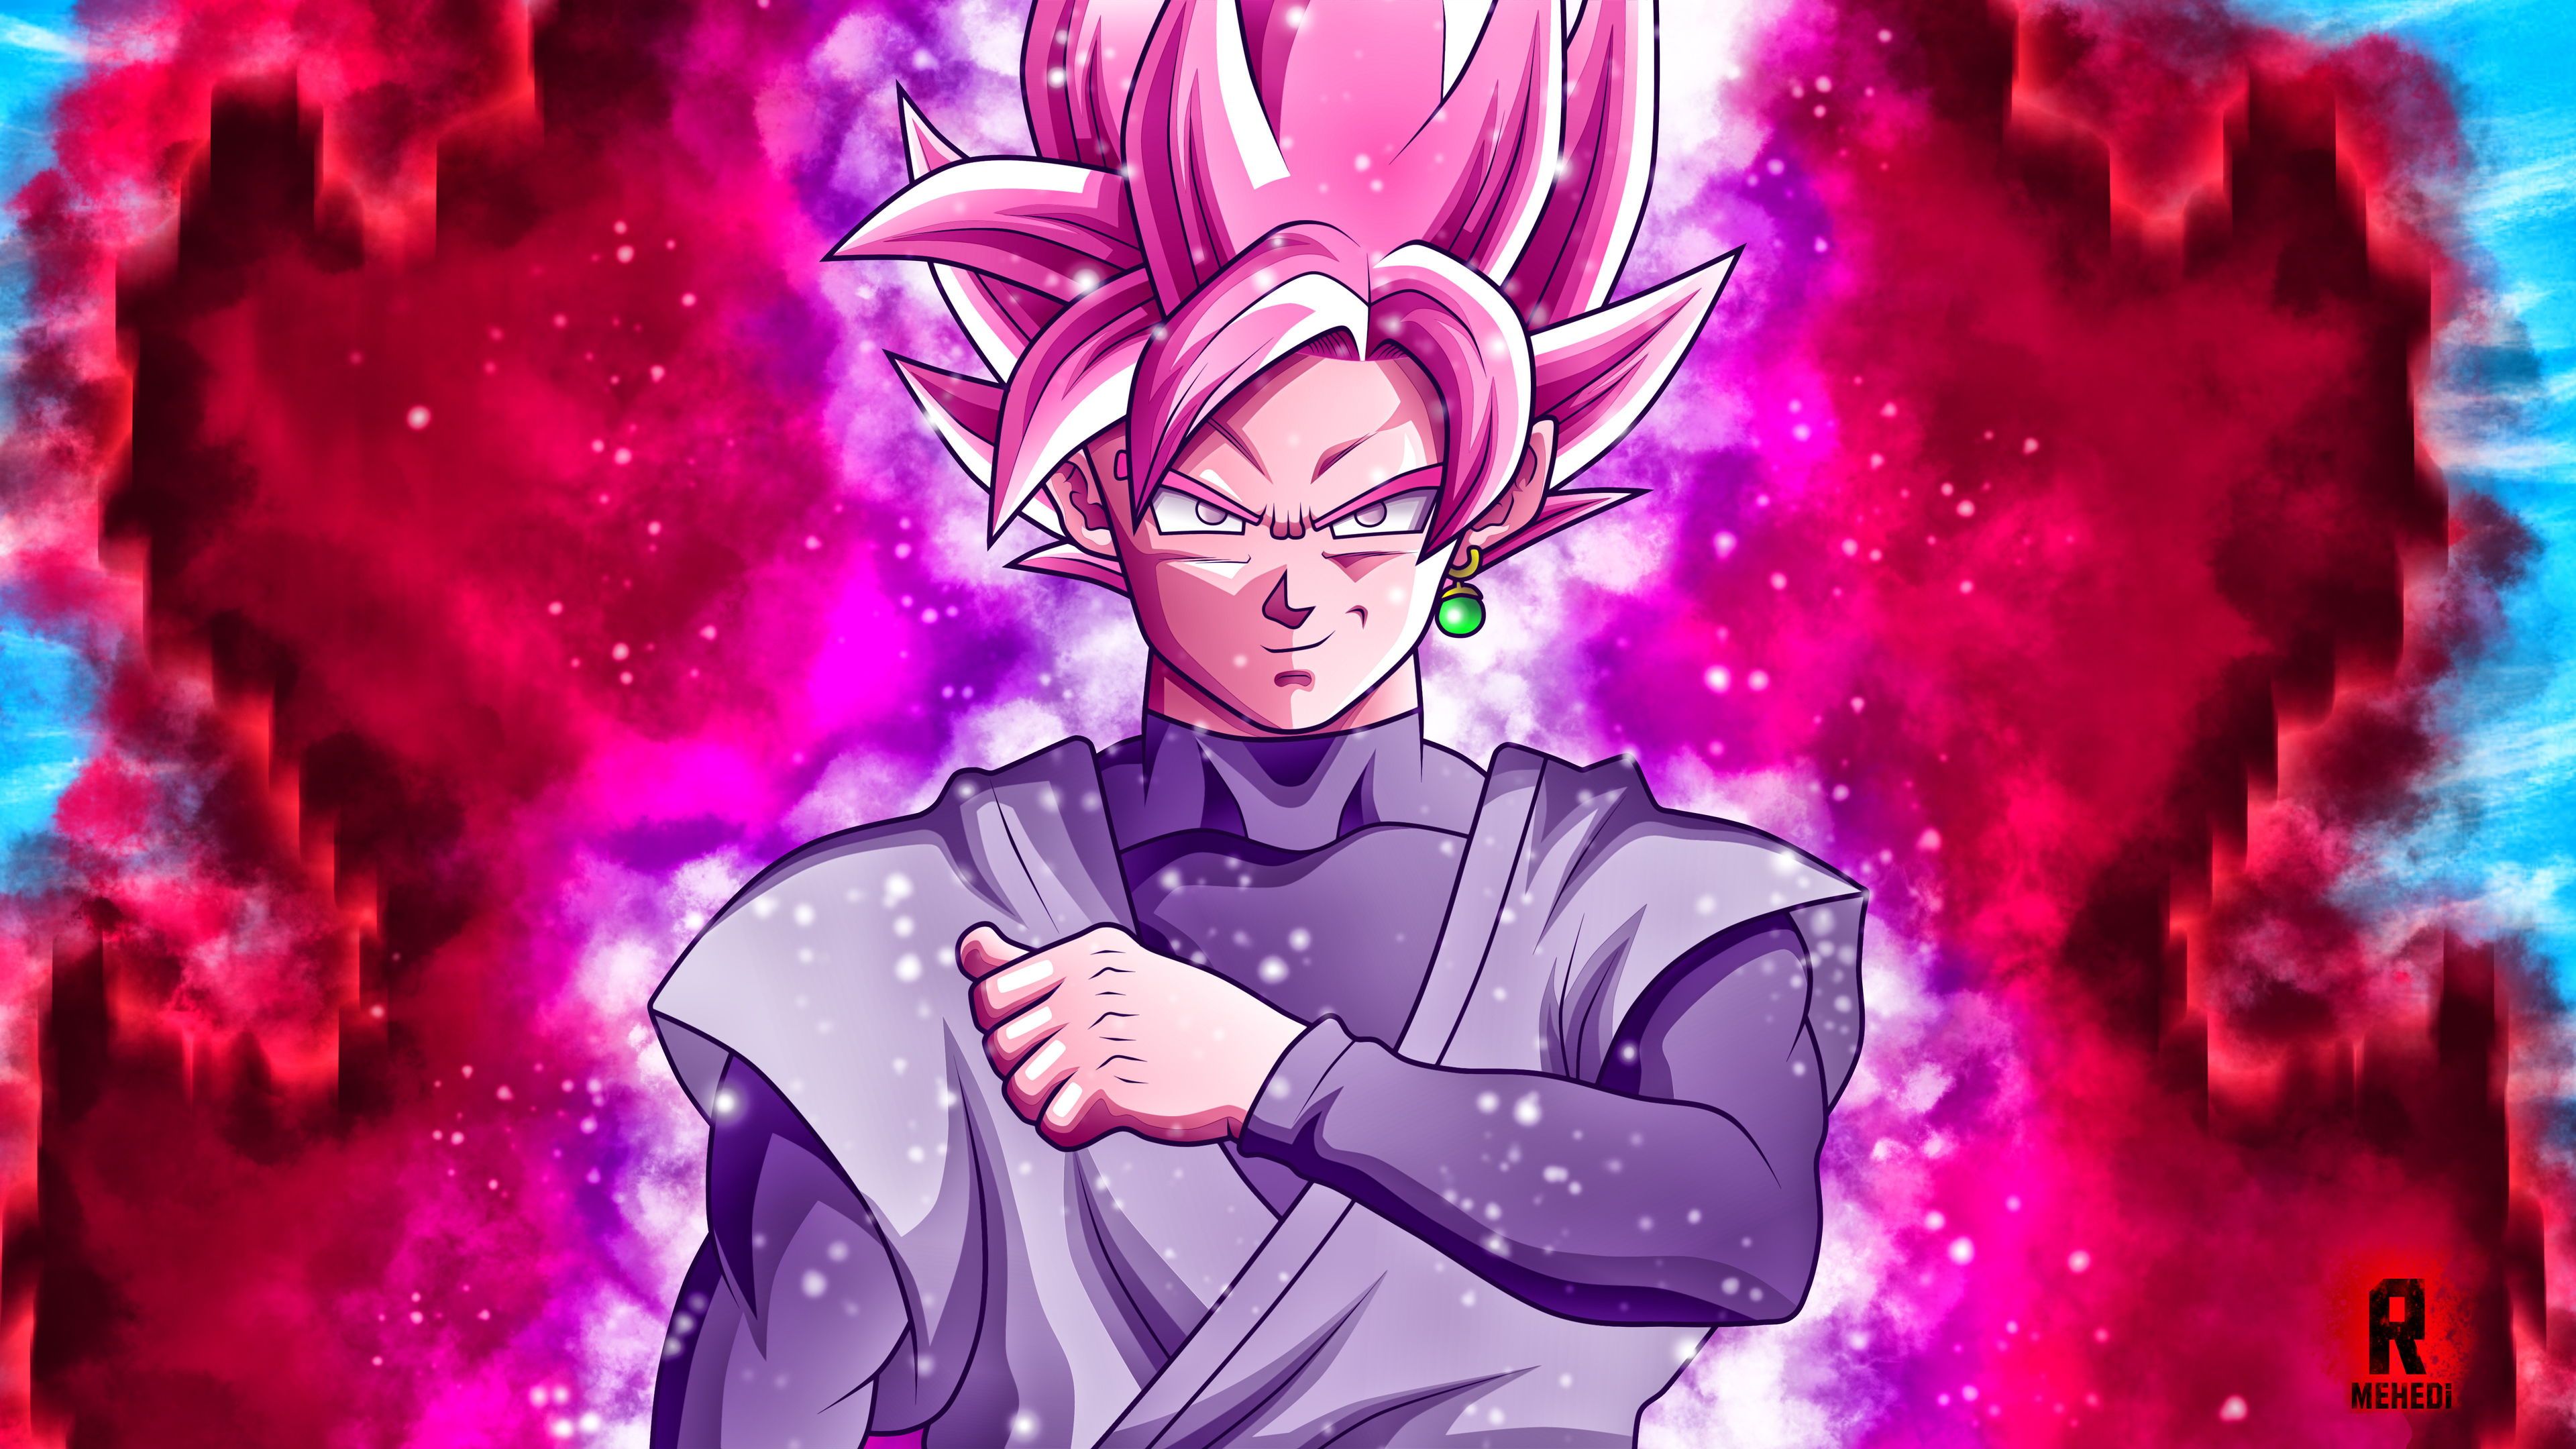 Wallpaper 4k Super Saiyan Rose 4k 4k Wallpapers 5k Wallpapers Anime Wallpapers Dragon Ball Super Wallpapers Dragon Ball Wallpapers Goku Wallpapers Hd Wallpapers